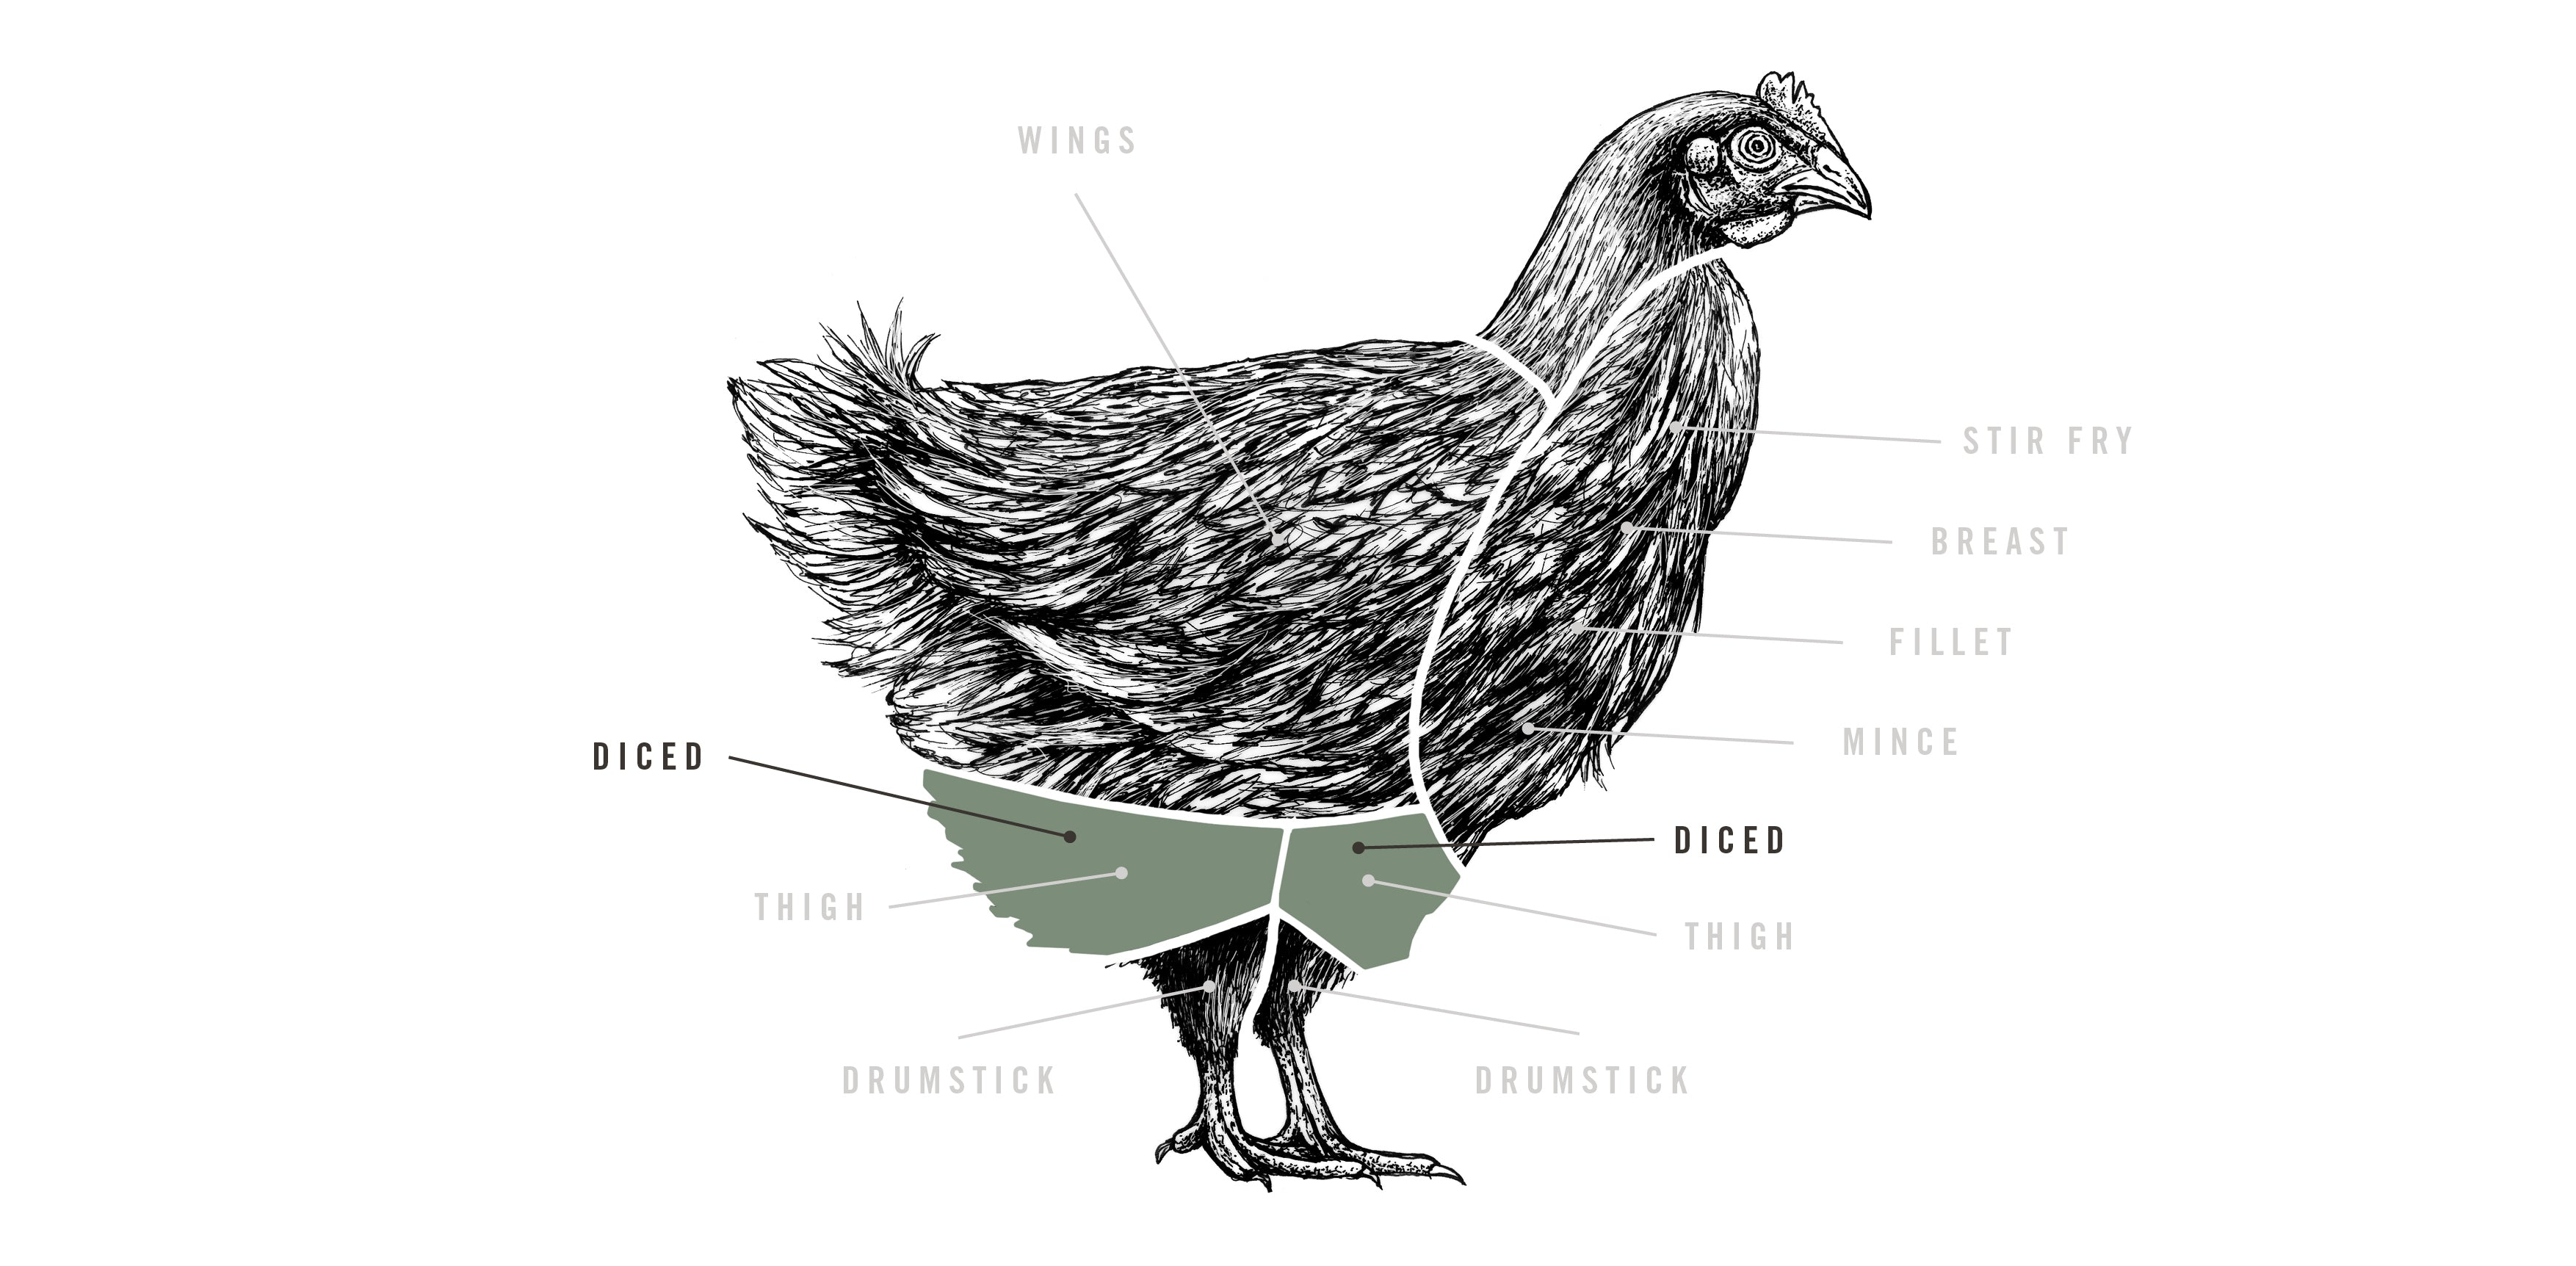 Free Range Diced Chicken meat cuts diagram